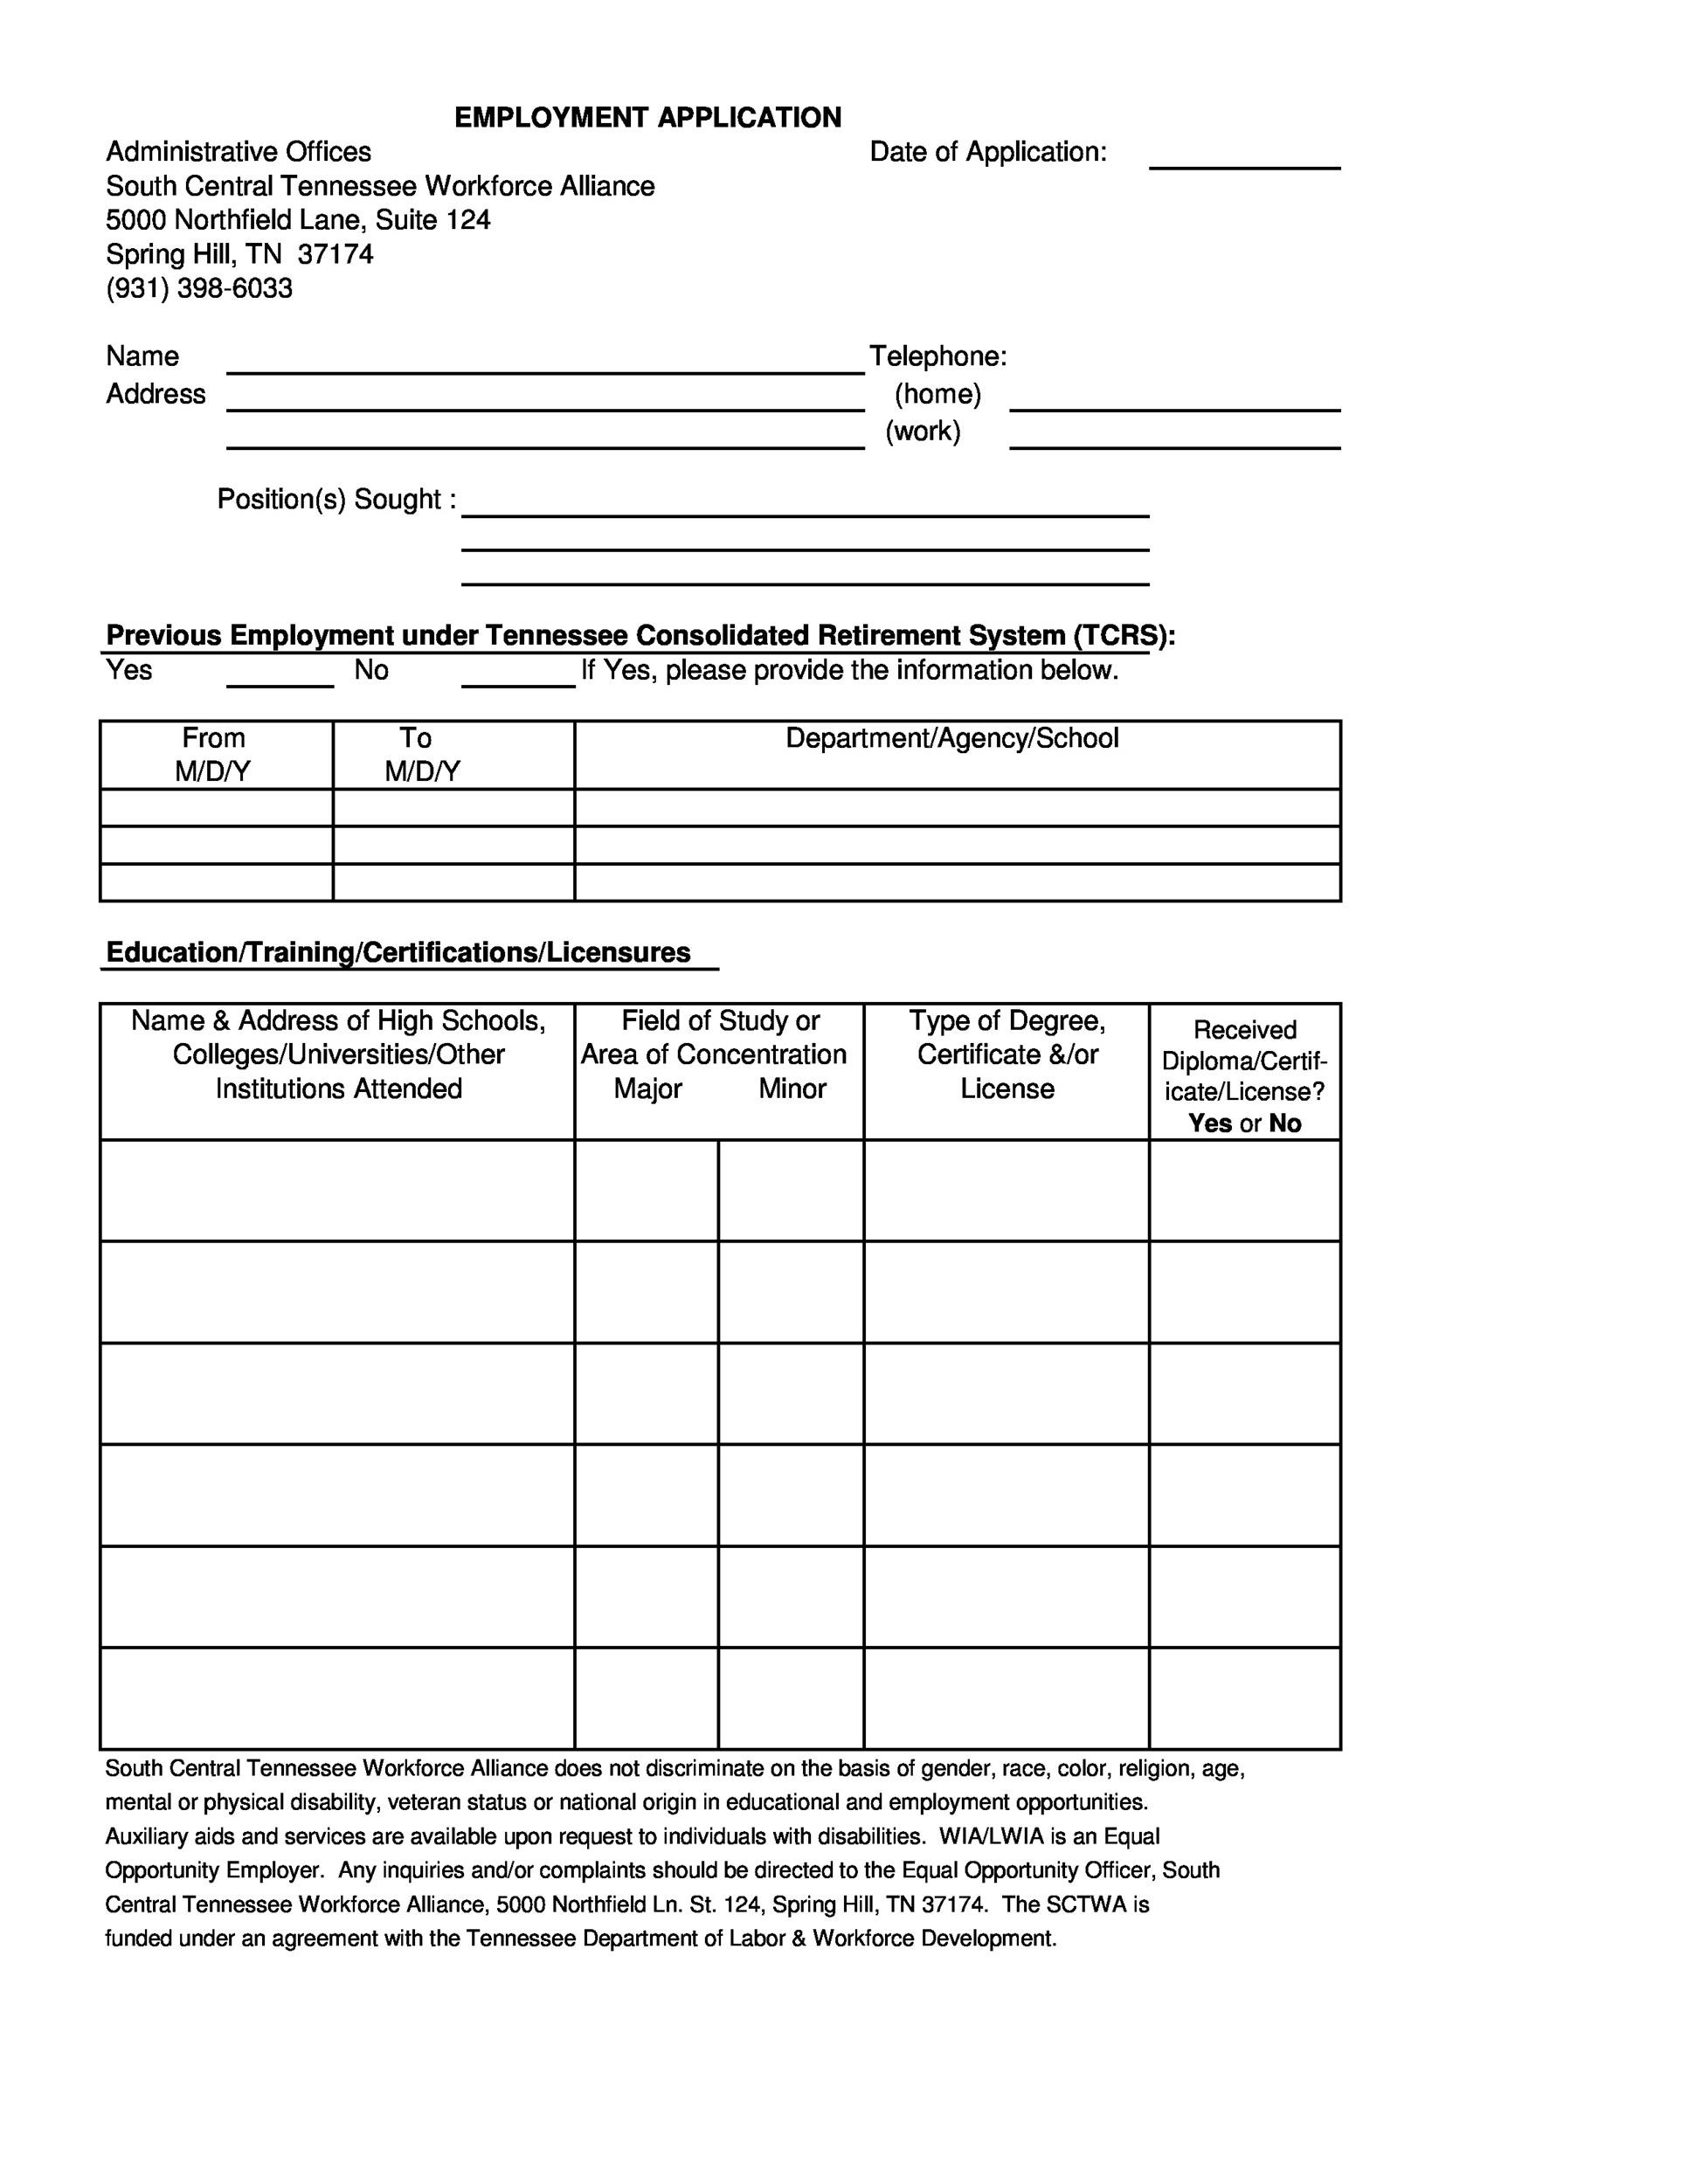 medical assistant job application, office assistant job application, restaurant job application, medical center job application, on job application form medical office